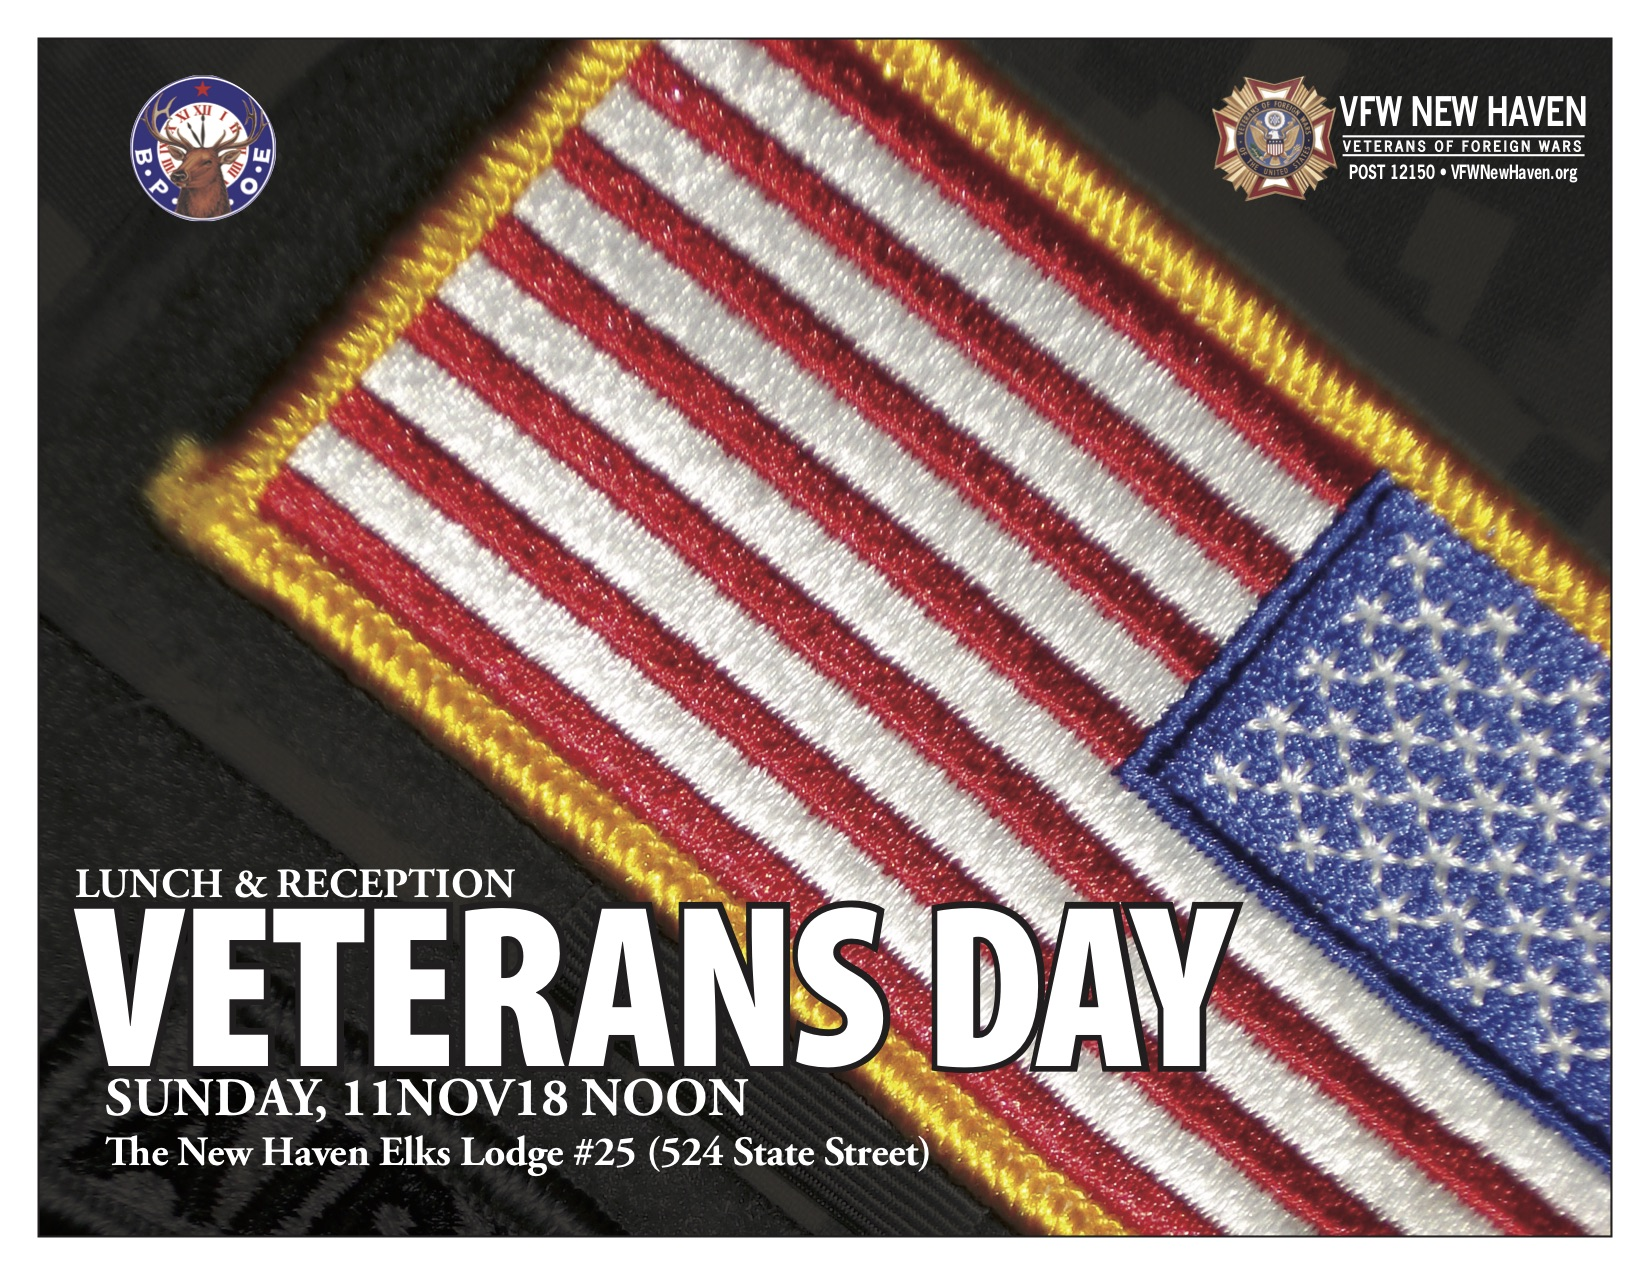 2018 Veterans Day Lunch & Reception